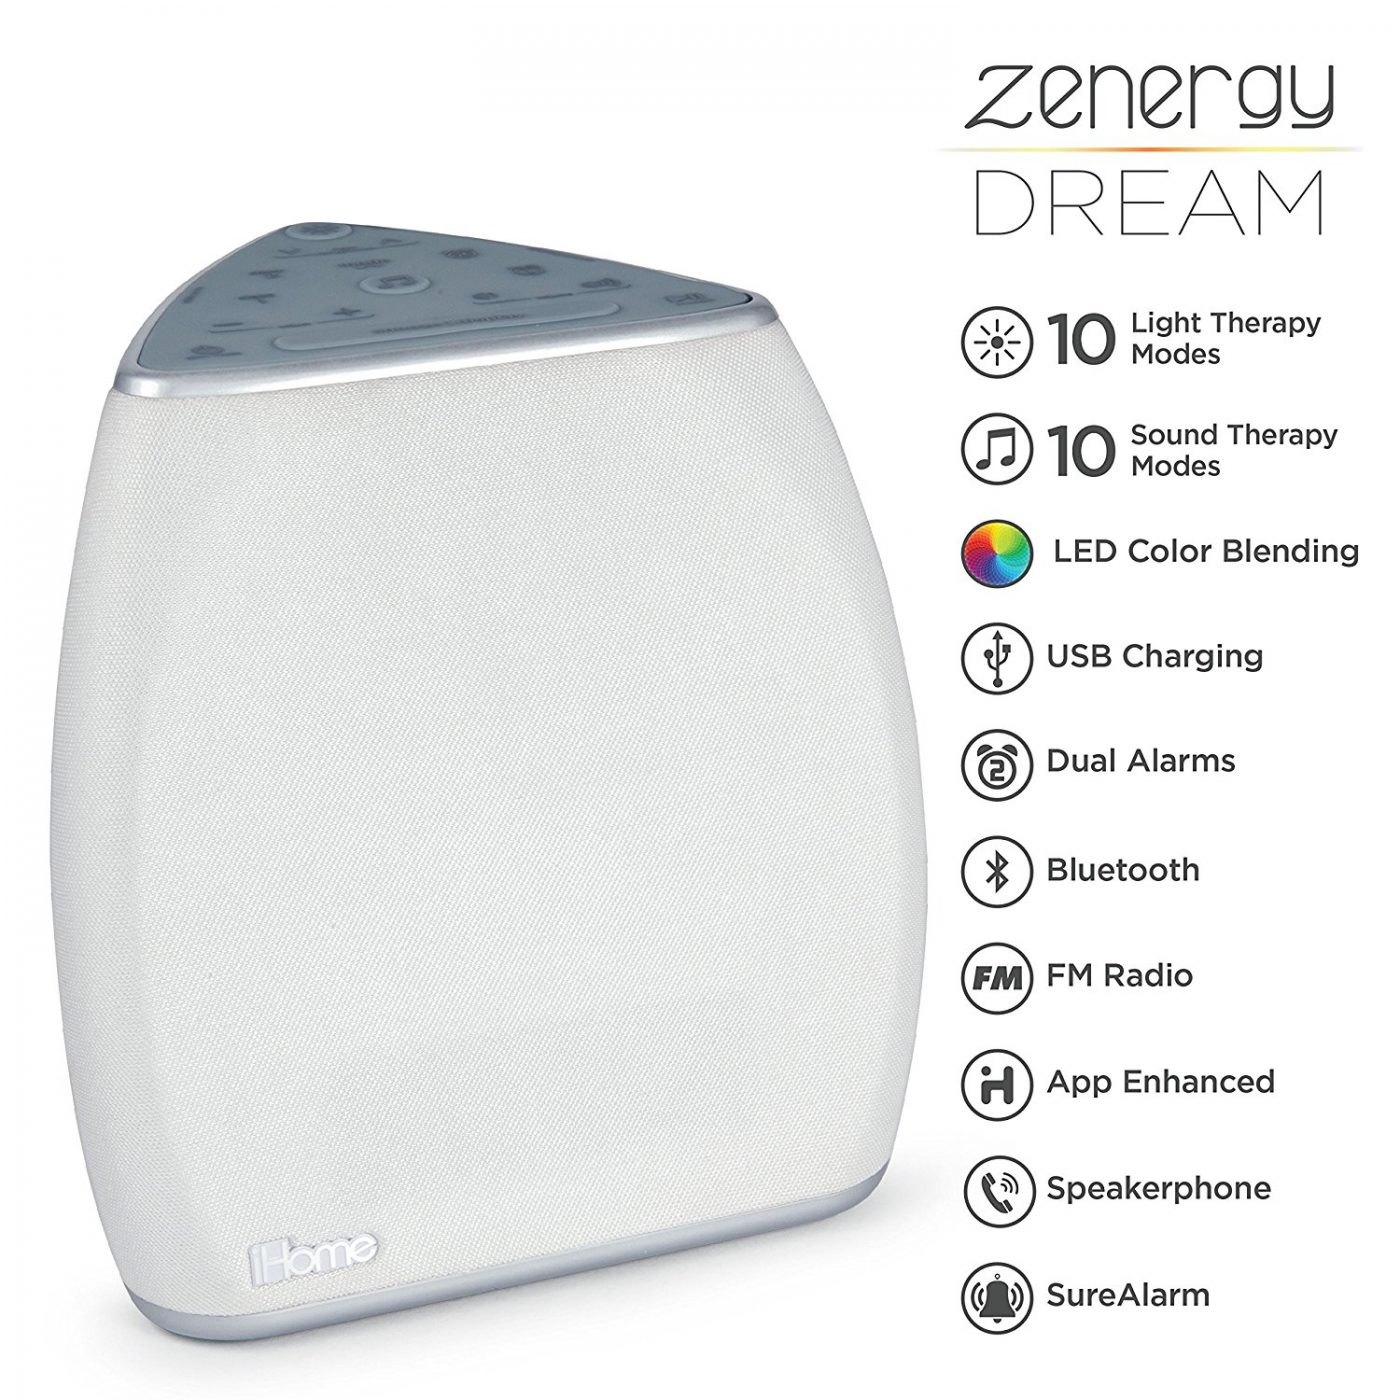 iHome Zenergy Bedside Sleep Therapy Machine Features